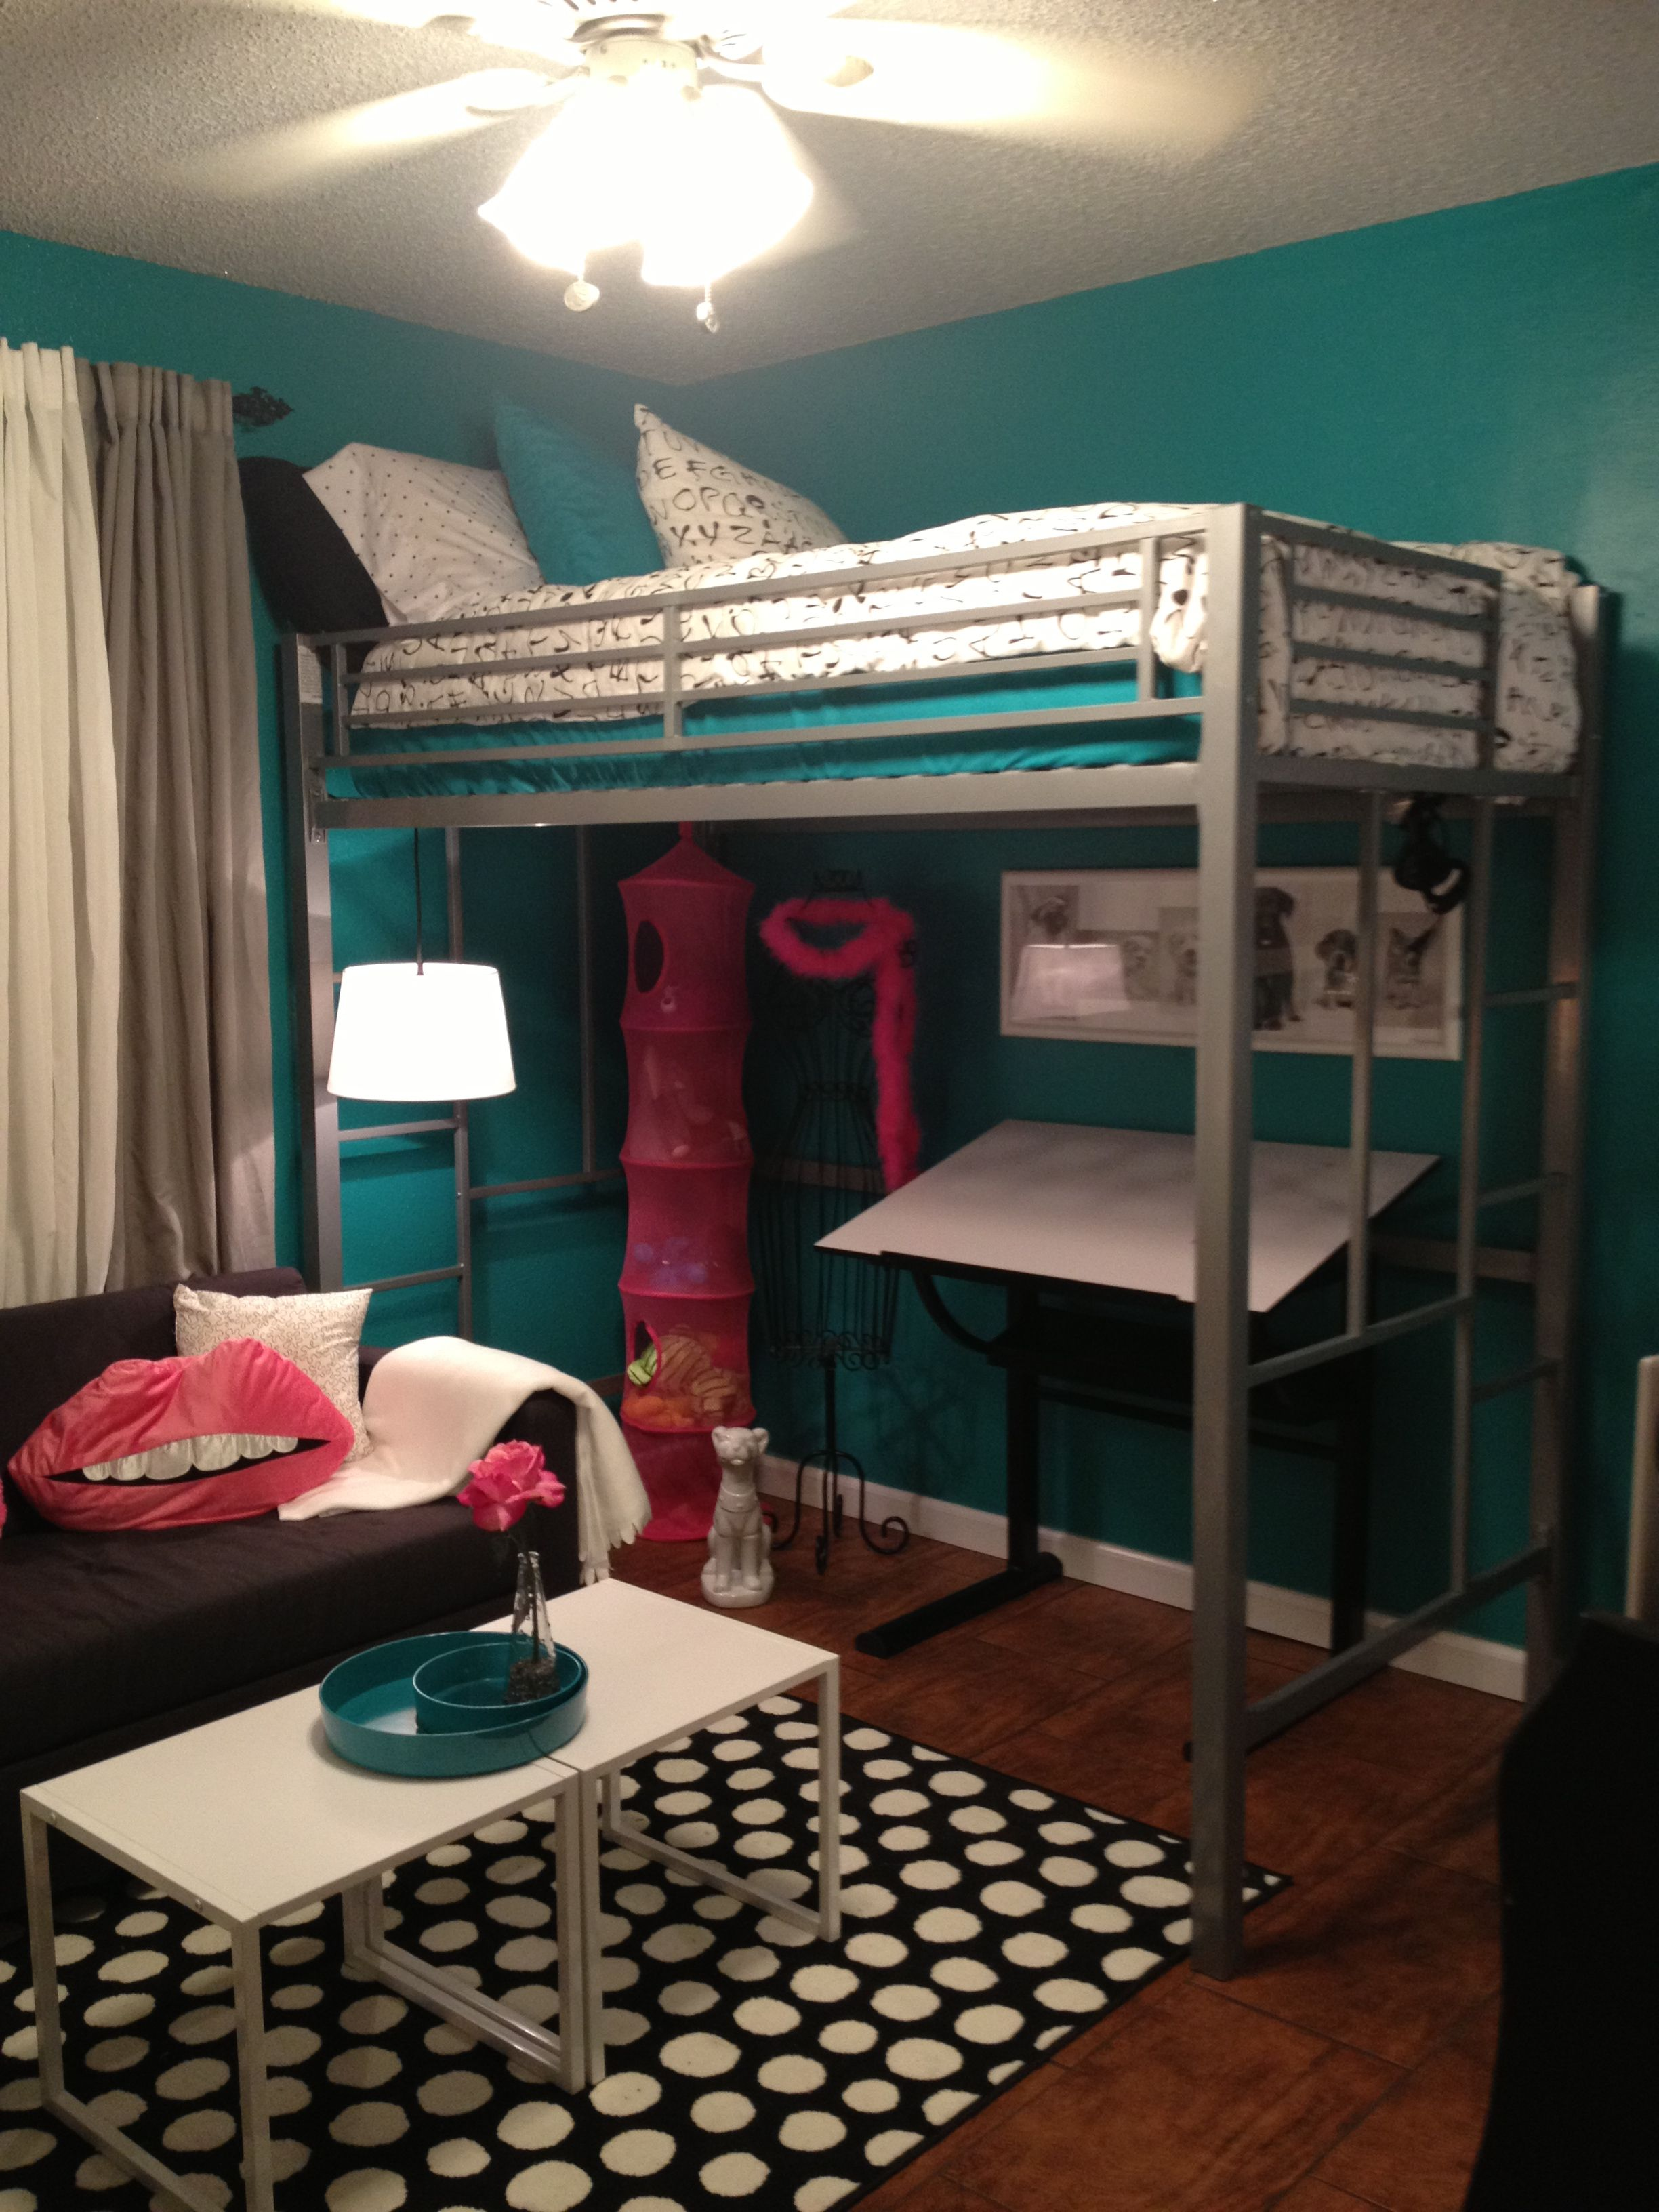 Teen room tween room bedroom idea loft bed black and for Teenage girl room decorating ideas